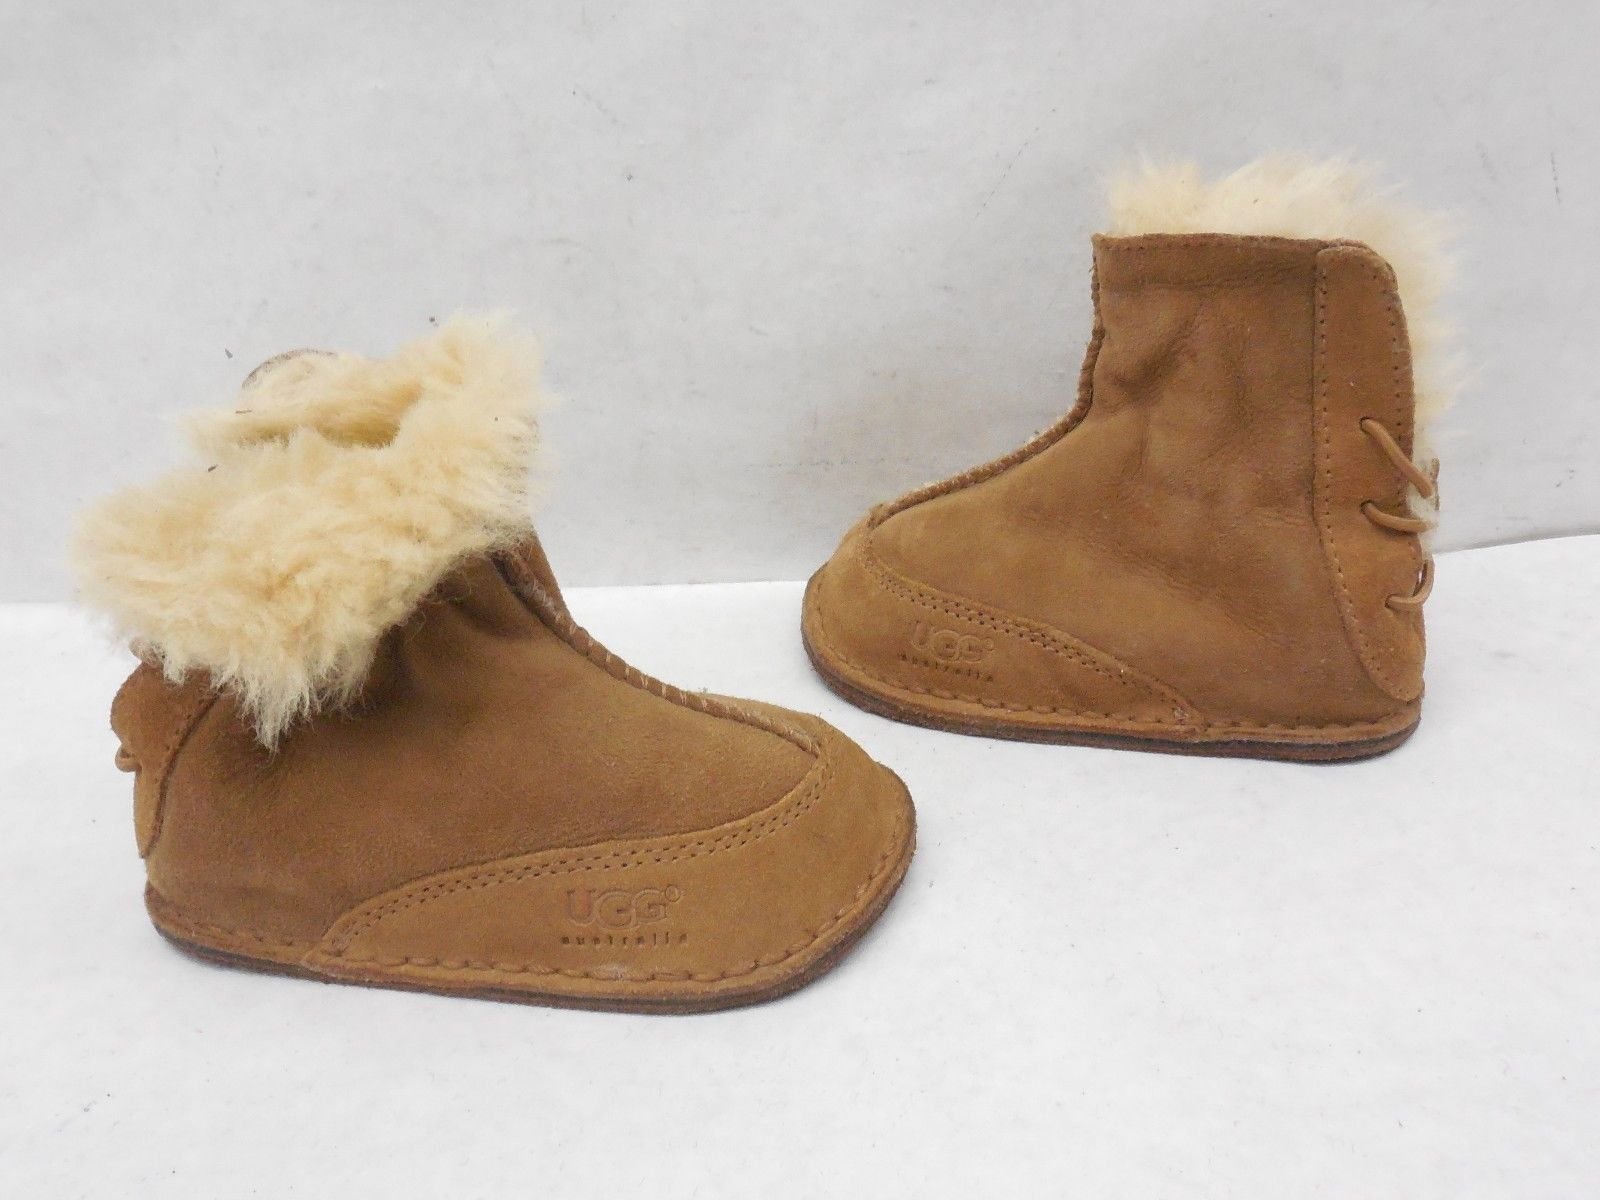 b5b679021d4 UGG Australia Infant Lil Girls Boo Chestnut Suede Snow Booties Boots ...